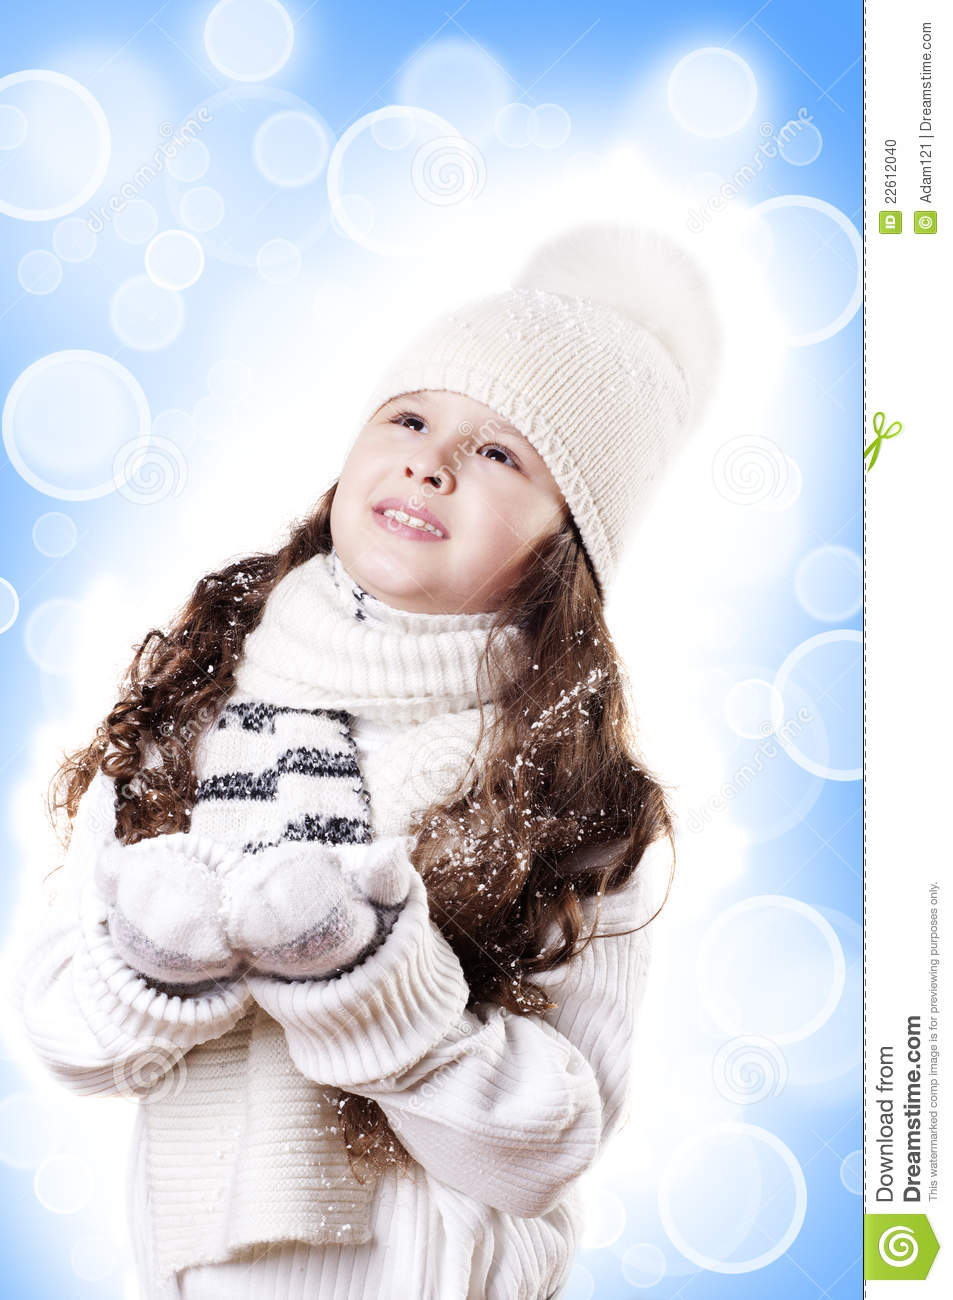 Winter Girl abstract white and blue background